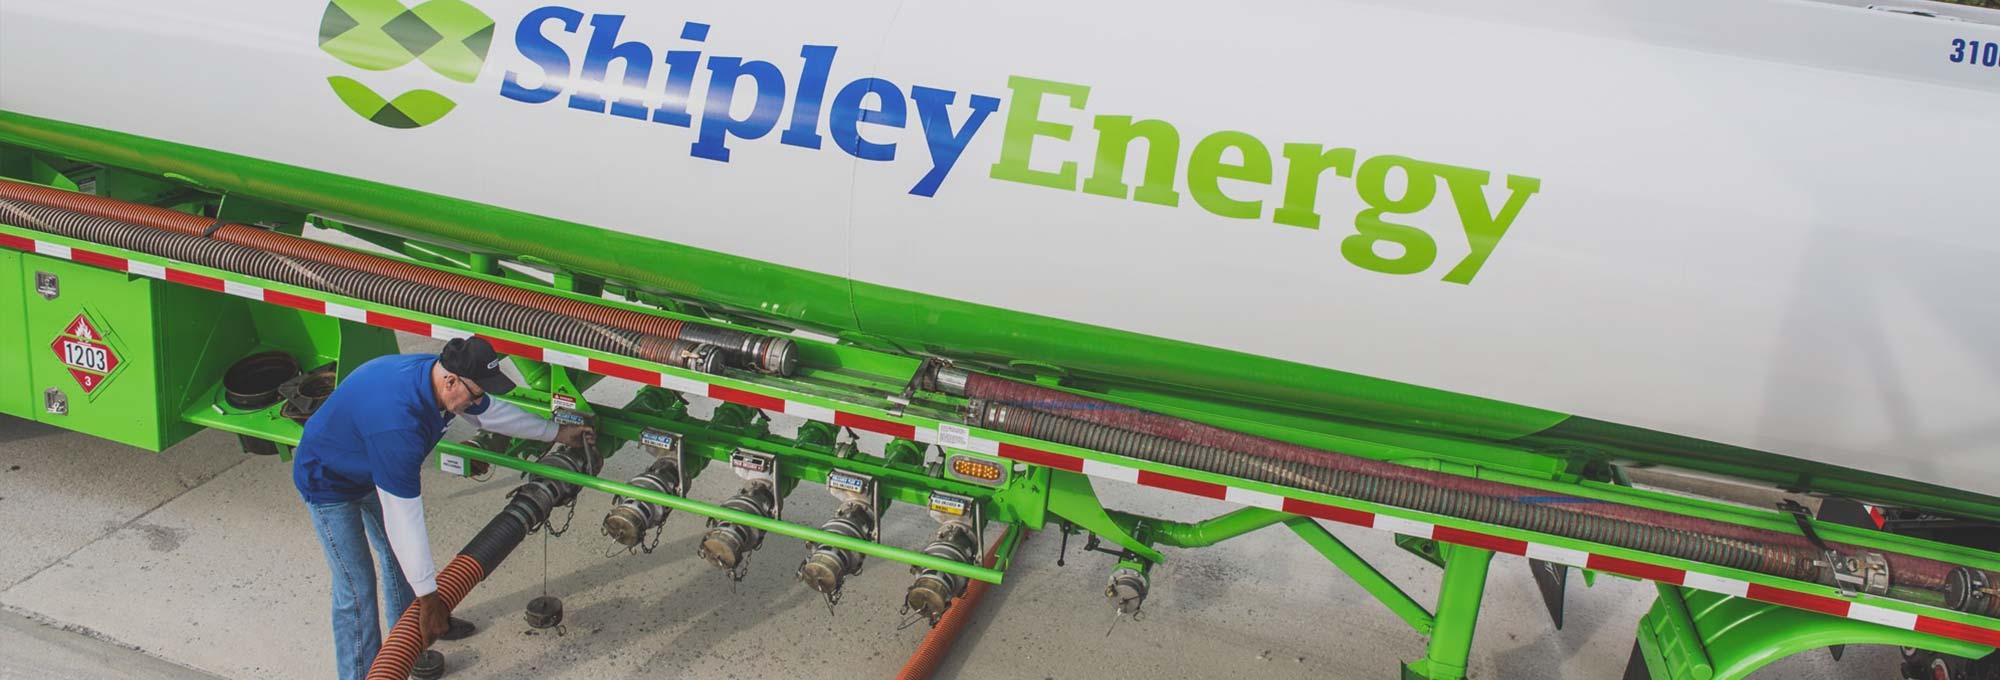 Contact Shipley Energy For Reliable Service At A Price That Makes Sense